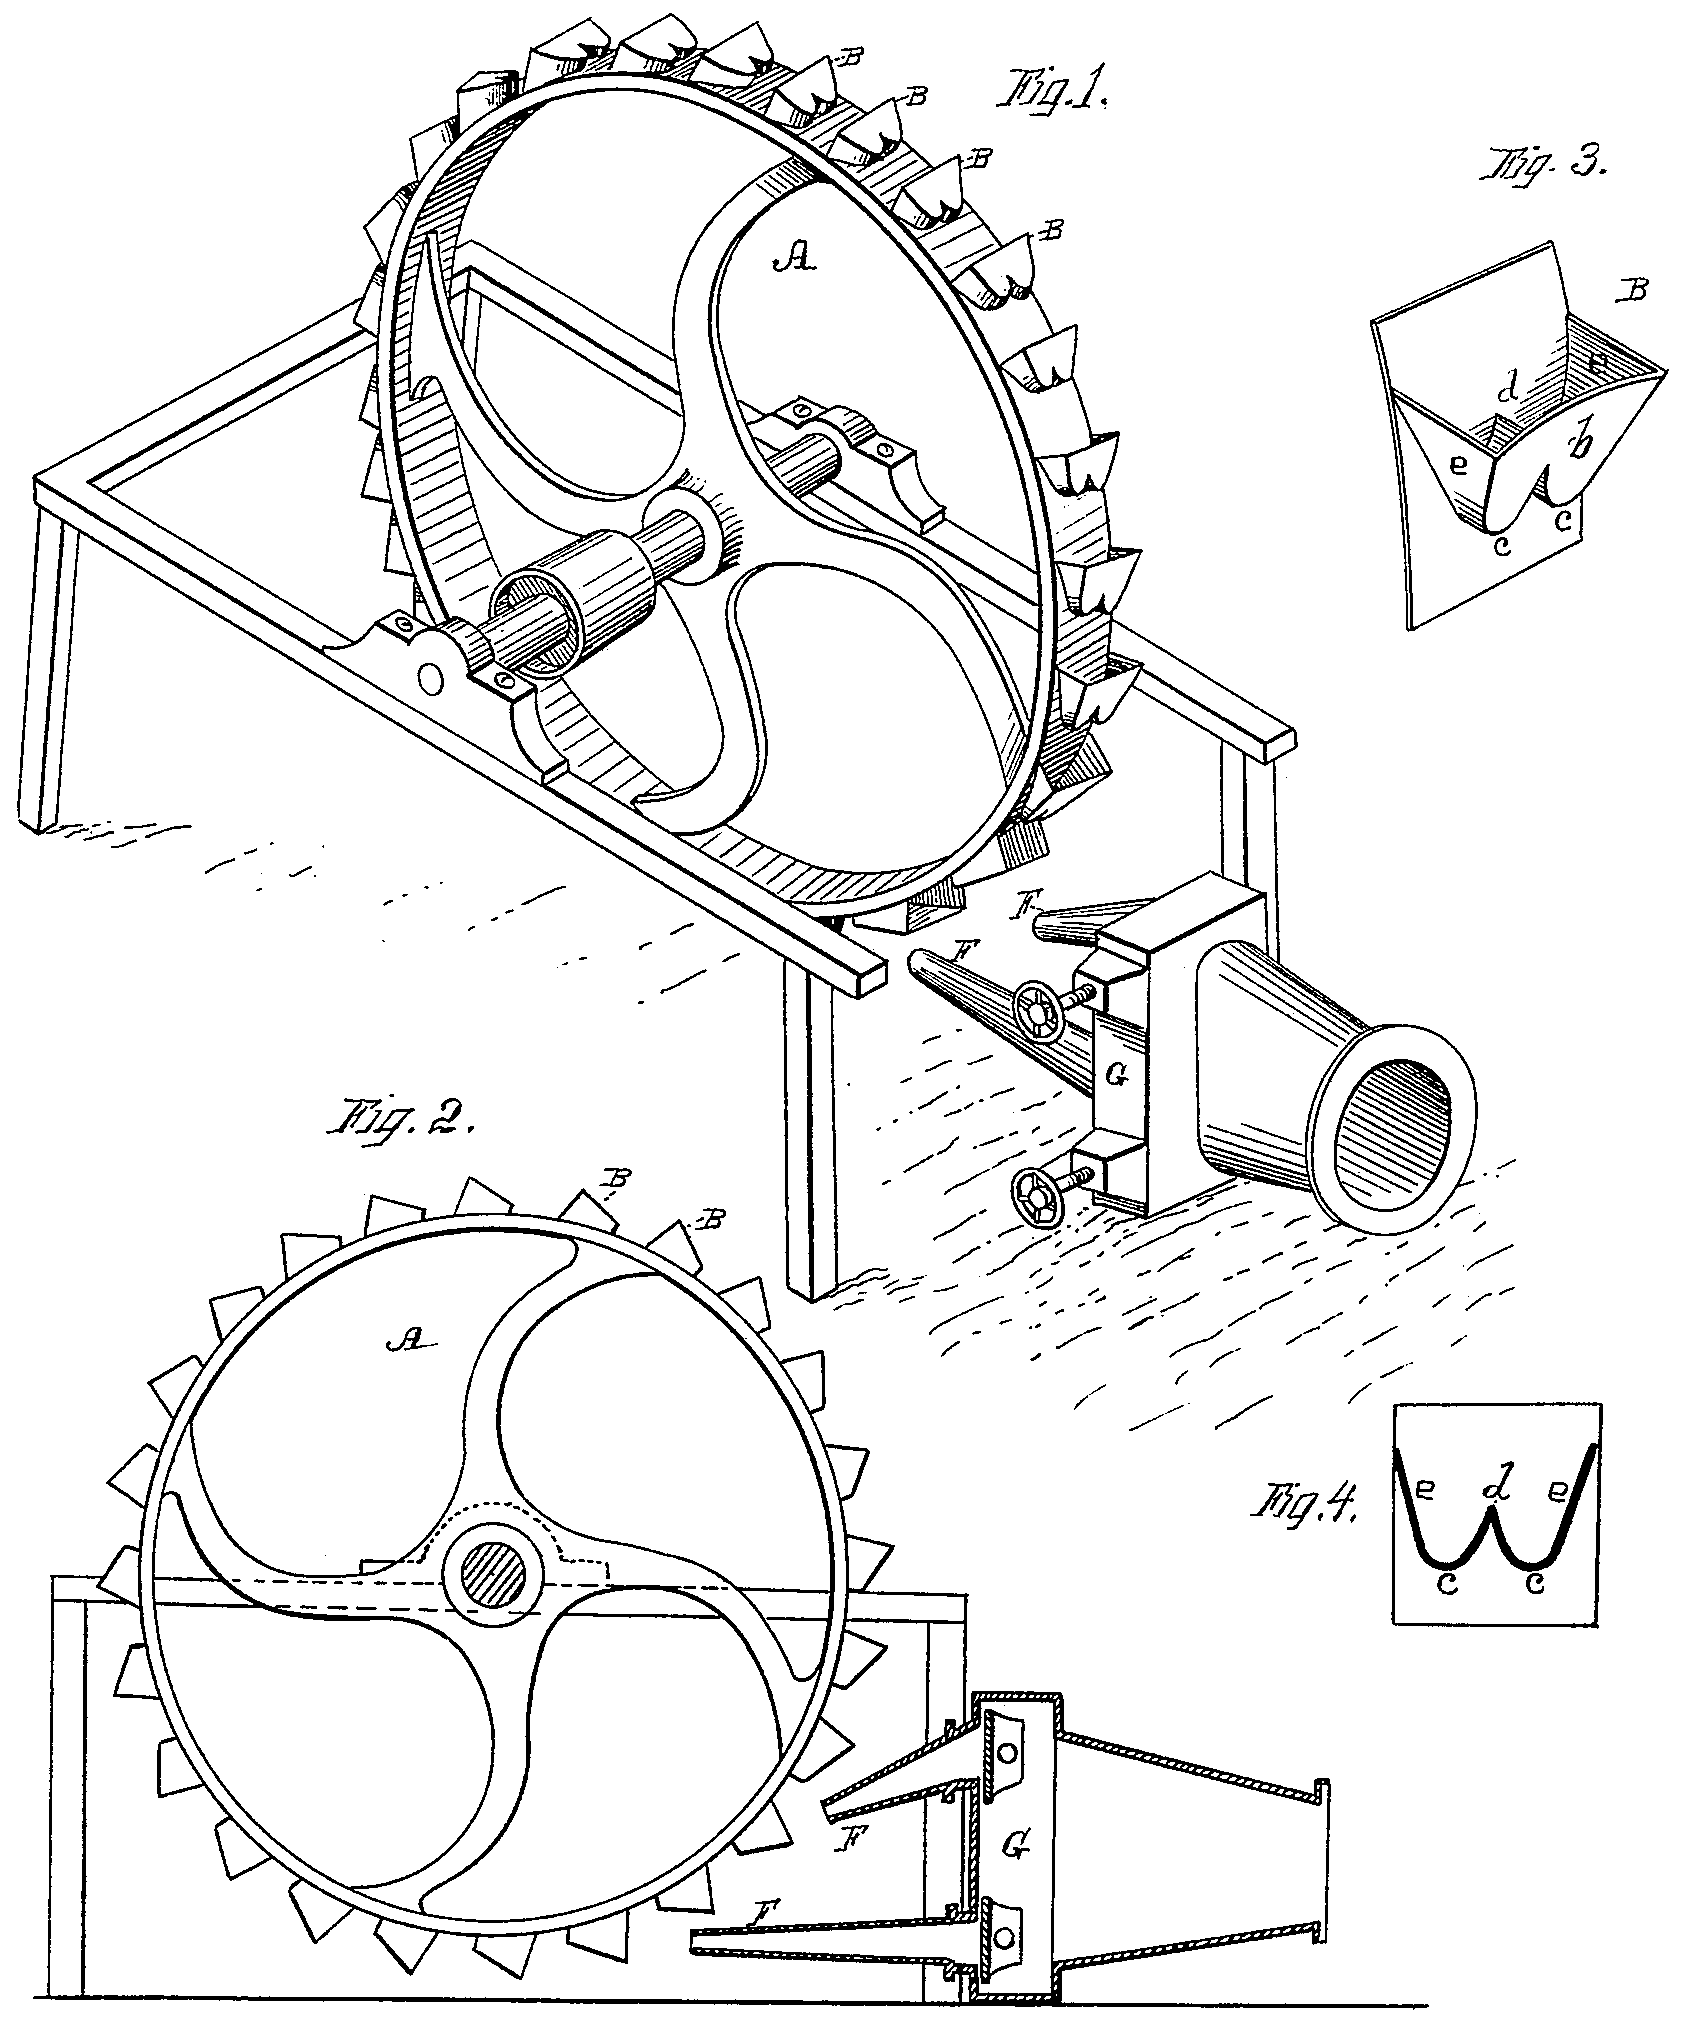 Hydro Power Plant Block Diagram Wiring Library Hydel Figure 4 Pelton Turbine Patent From 1880 Source Wikipedia